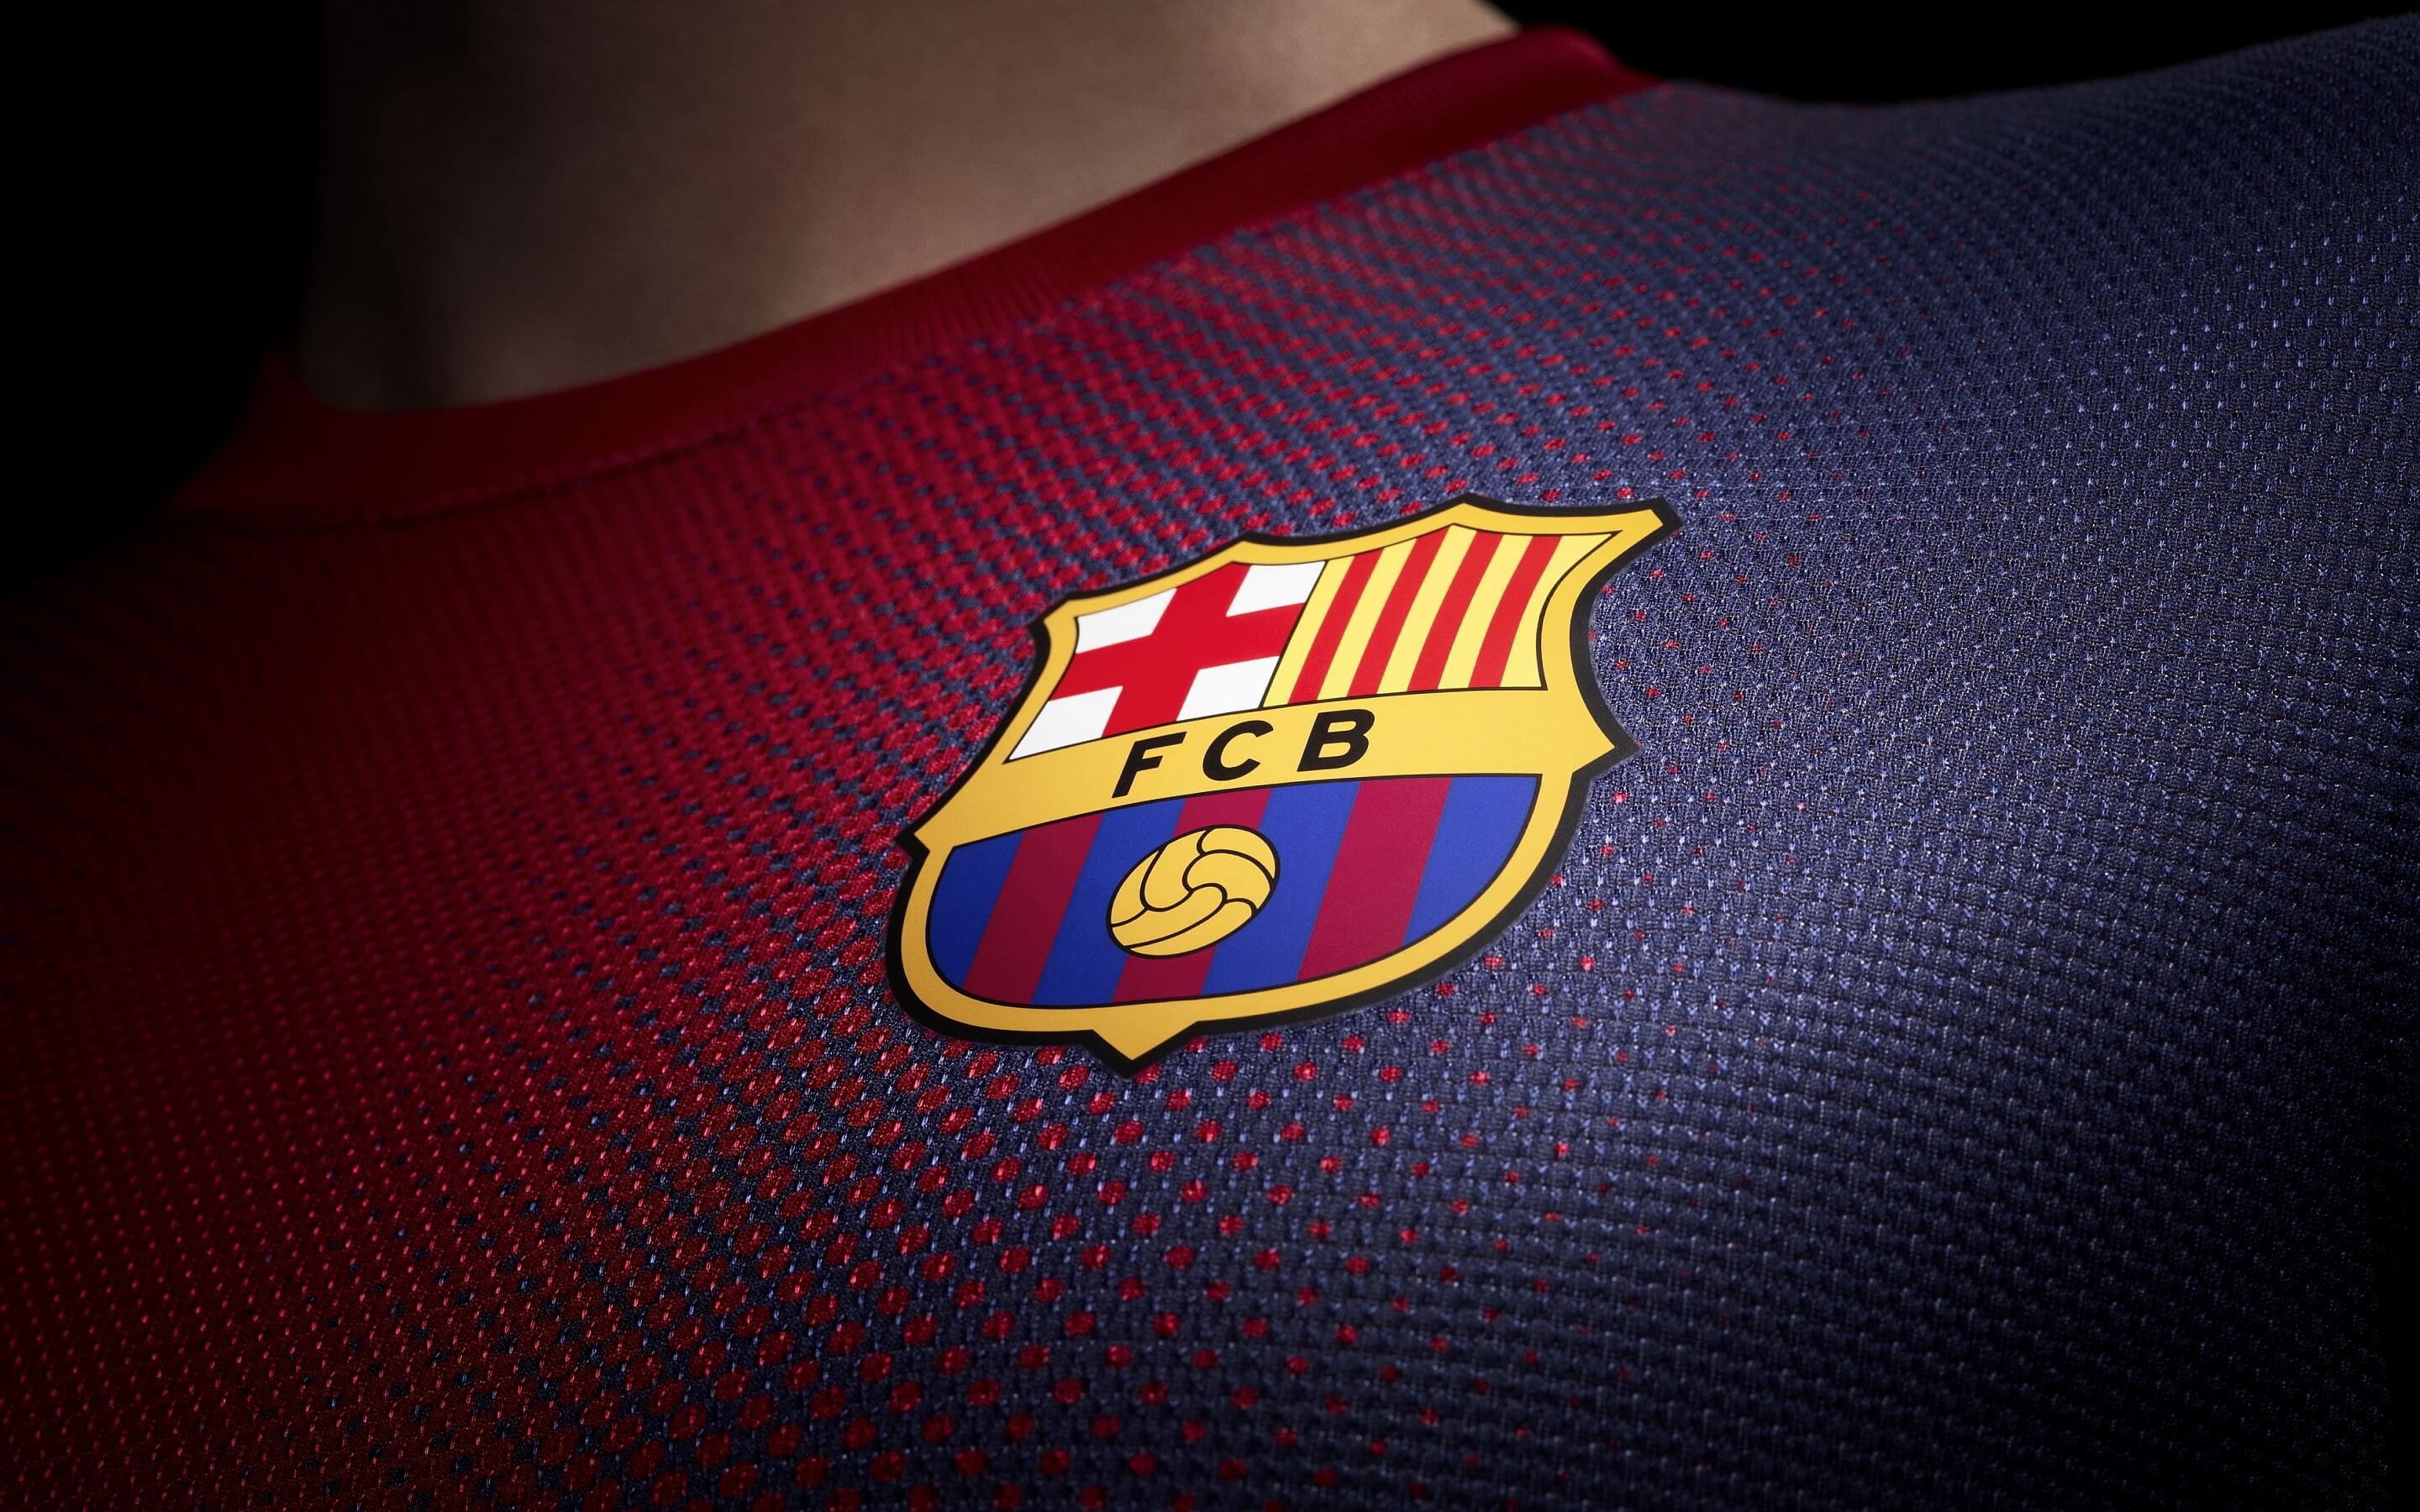 FC Barcelona Wallpapers 2